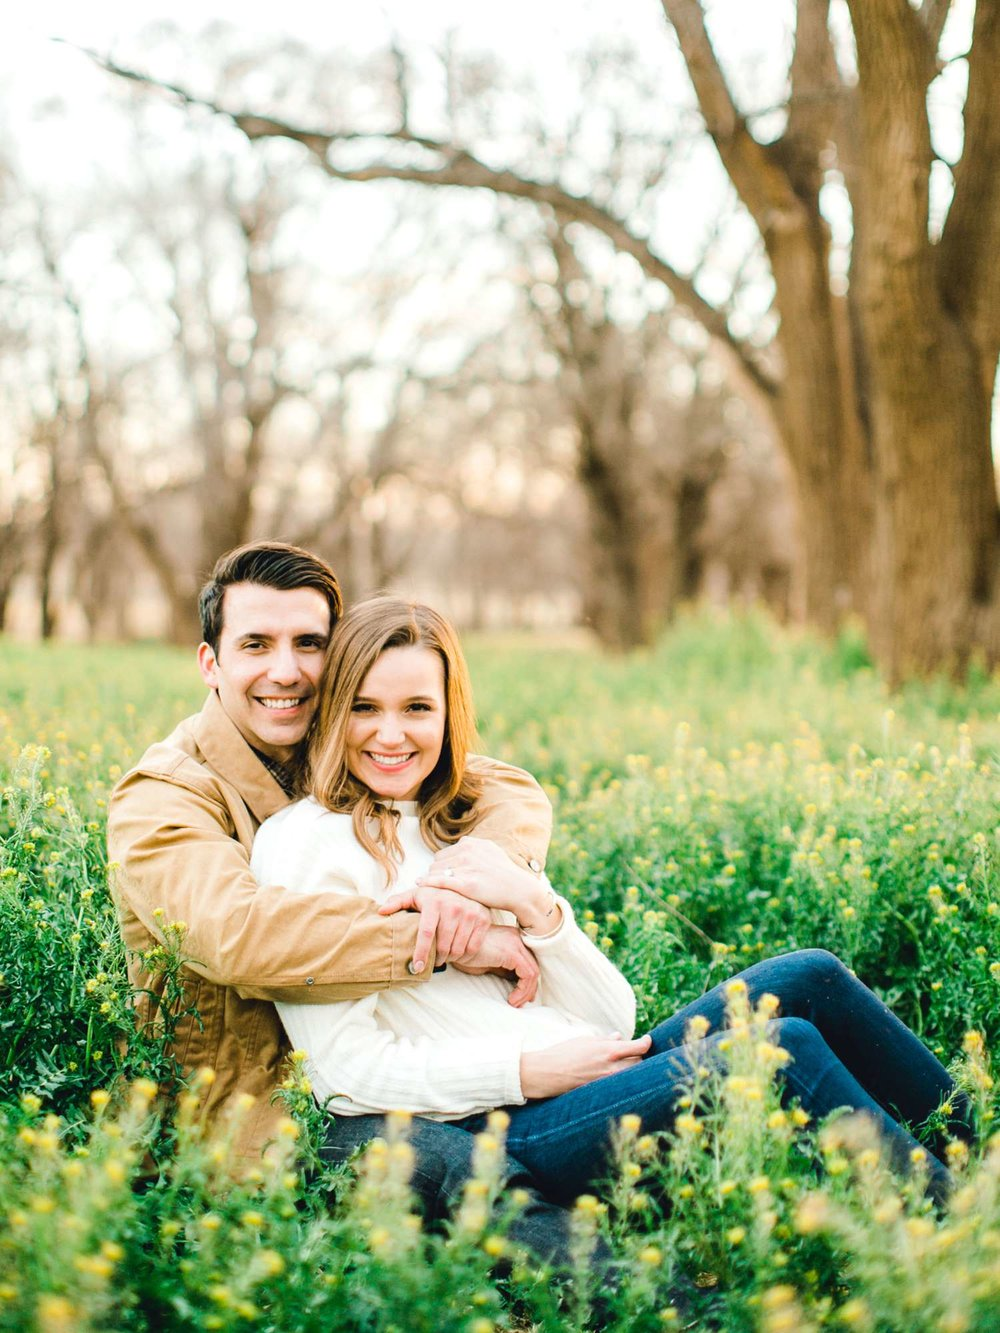 CAROLINE+CHRISTIAN+ALLEEJ+ENGAGEMENTS+LUBBOCK+WEDDING+PHOTOGRAPHER+FIRST+BAPTIST+CHURCH_0069.jpg